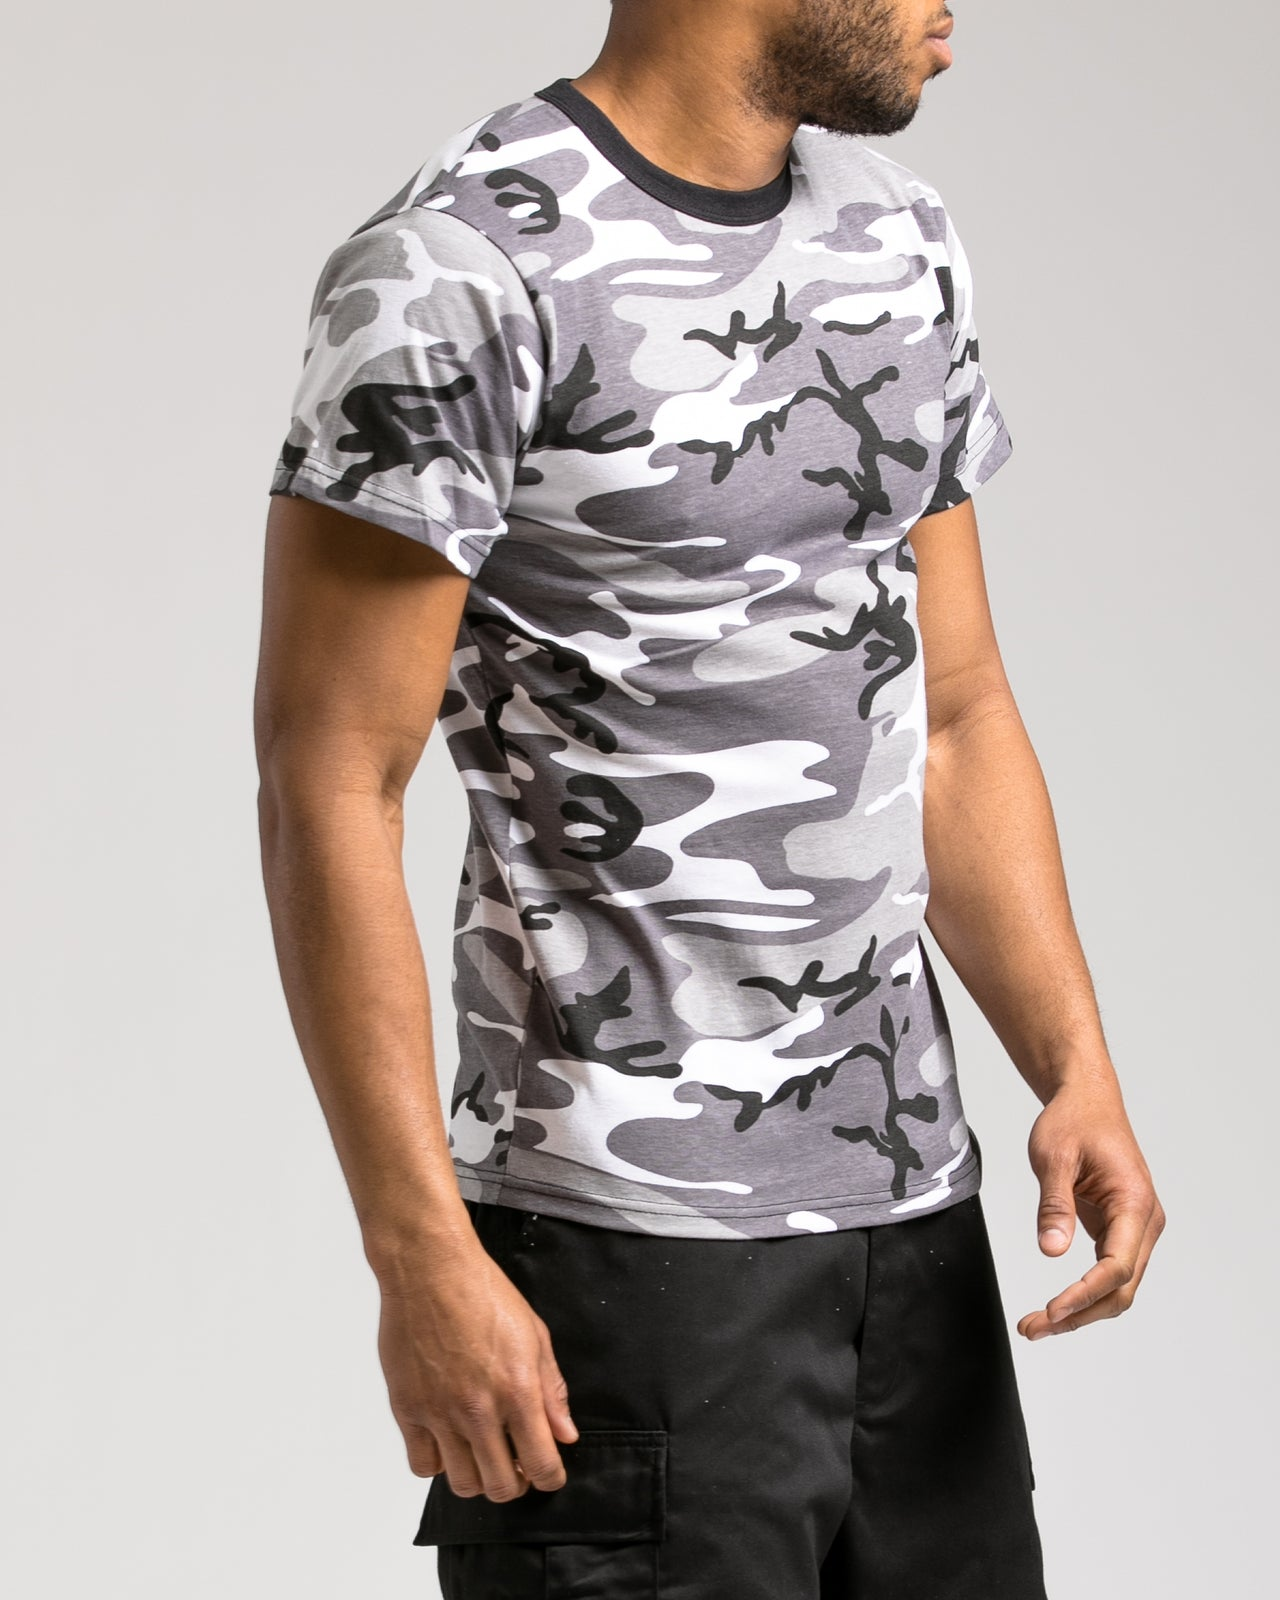 Camo Tee - Color: City Camo | Gray